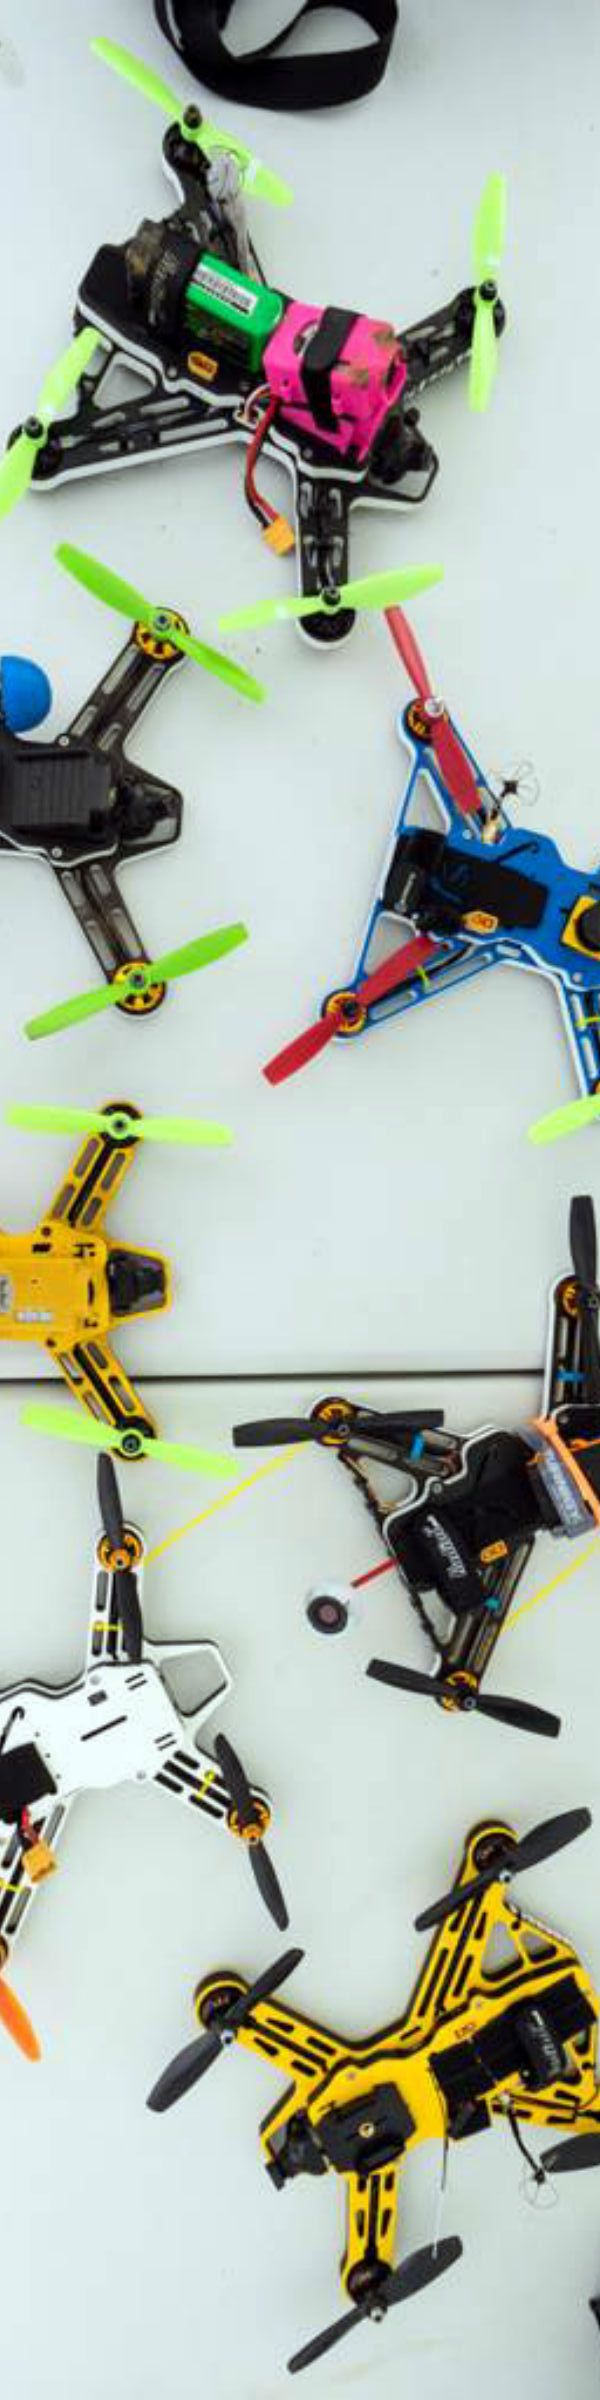 Fossils Stuff was the first UK racing drone manufacturer